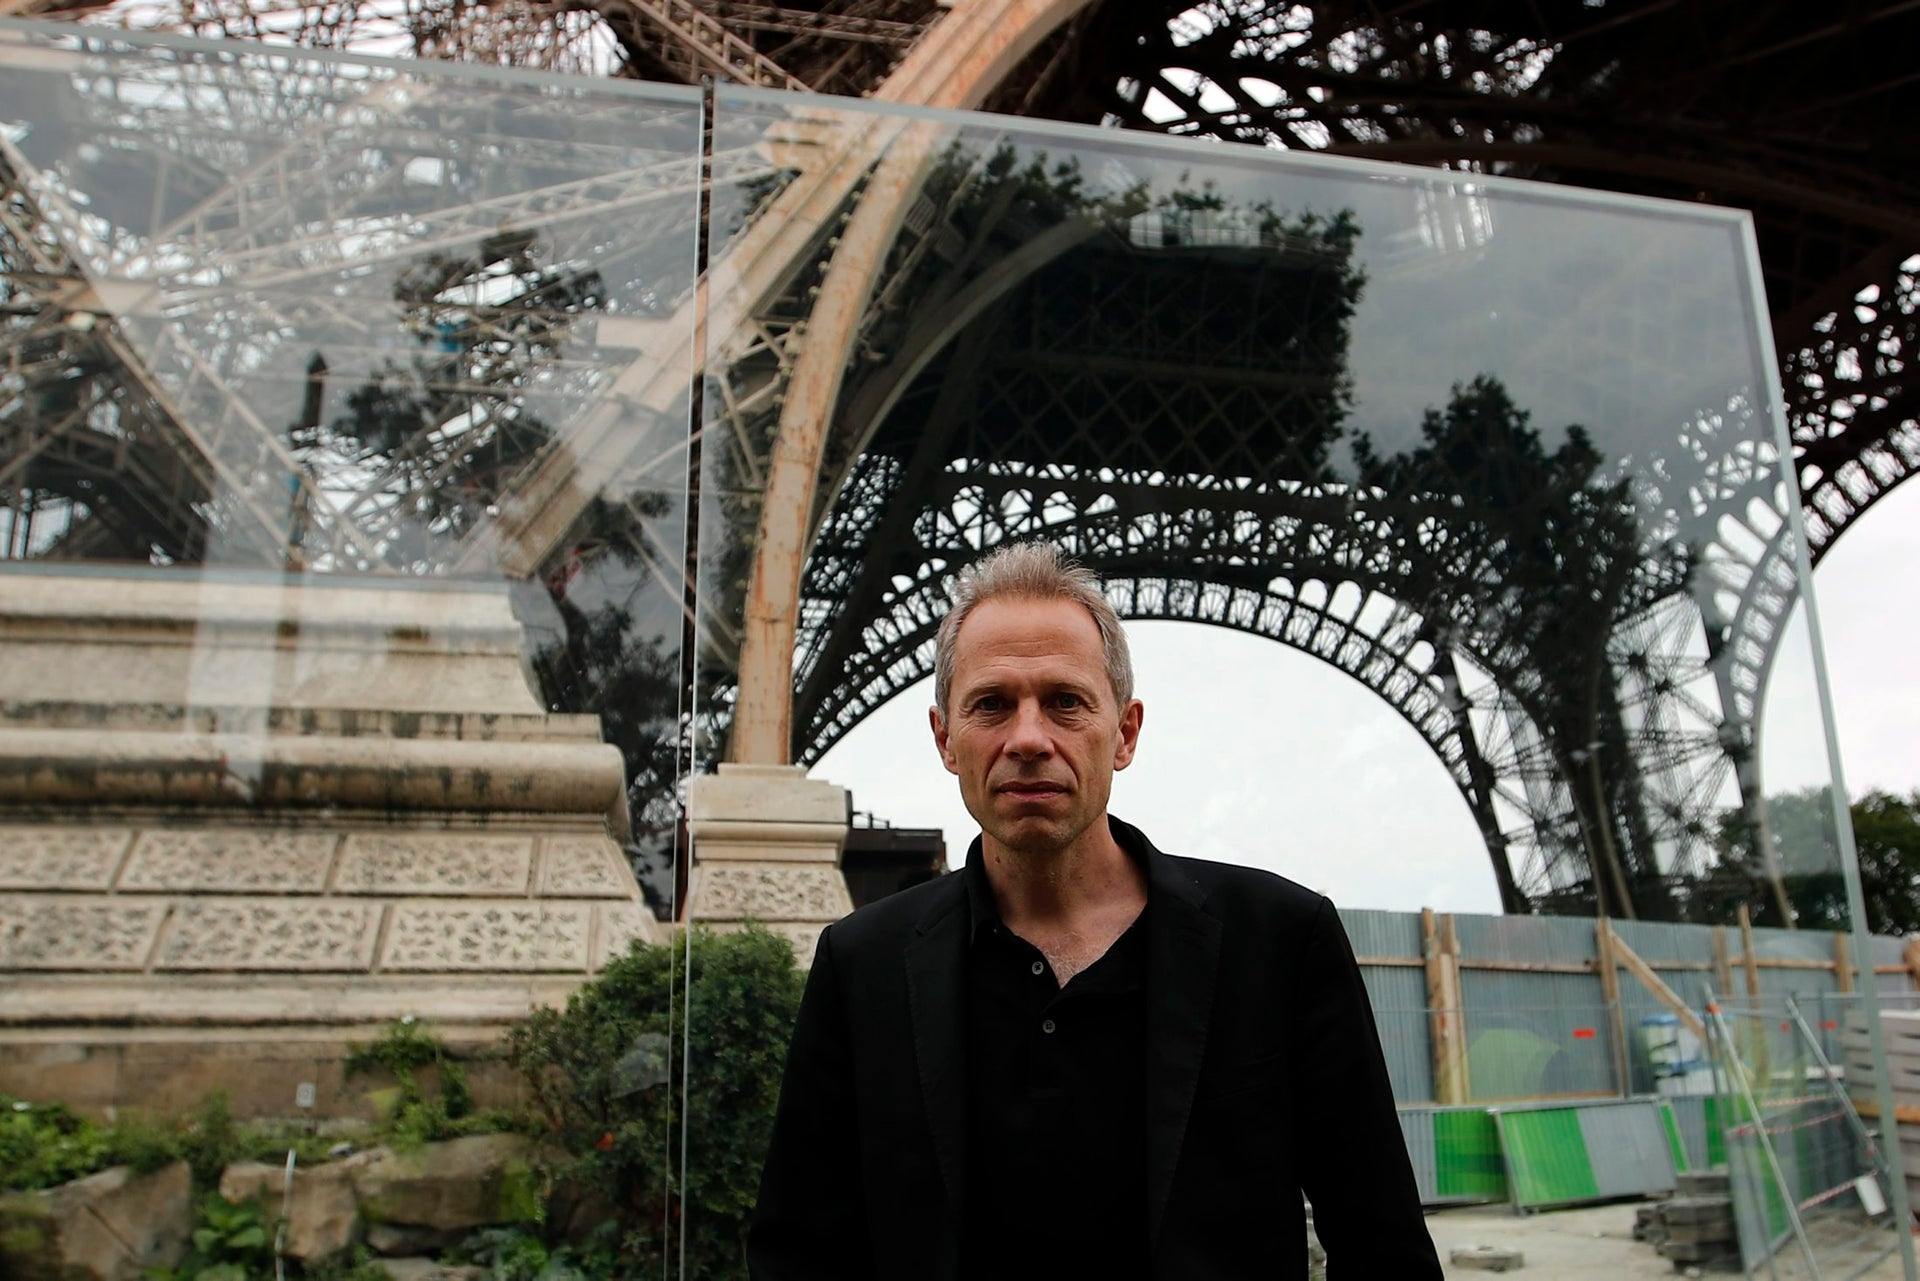 Architect Dietmar Feichtinger poses in front of a new security bulletproof glass barrier under construction around the Eiffel Tower in Paris, France, Thursday, June 14, 2018.